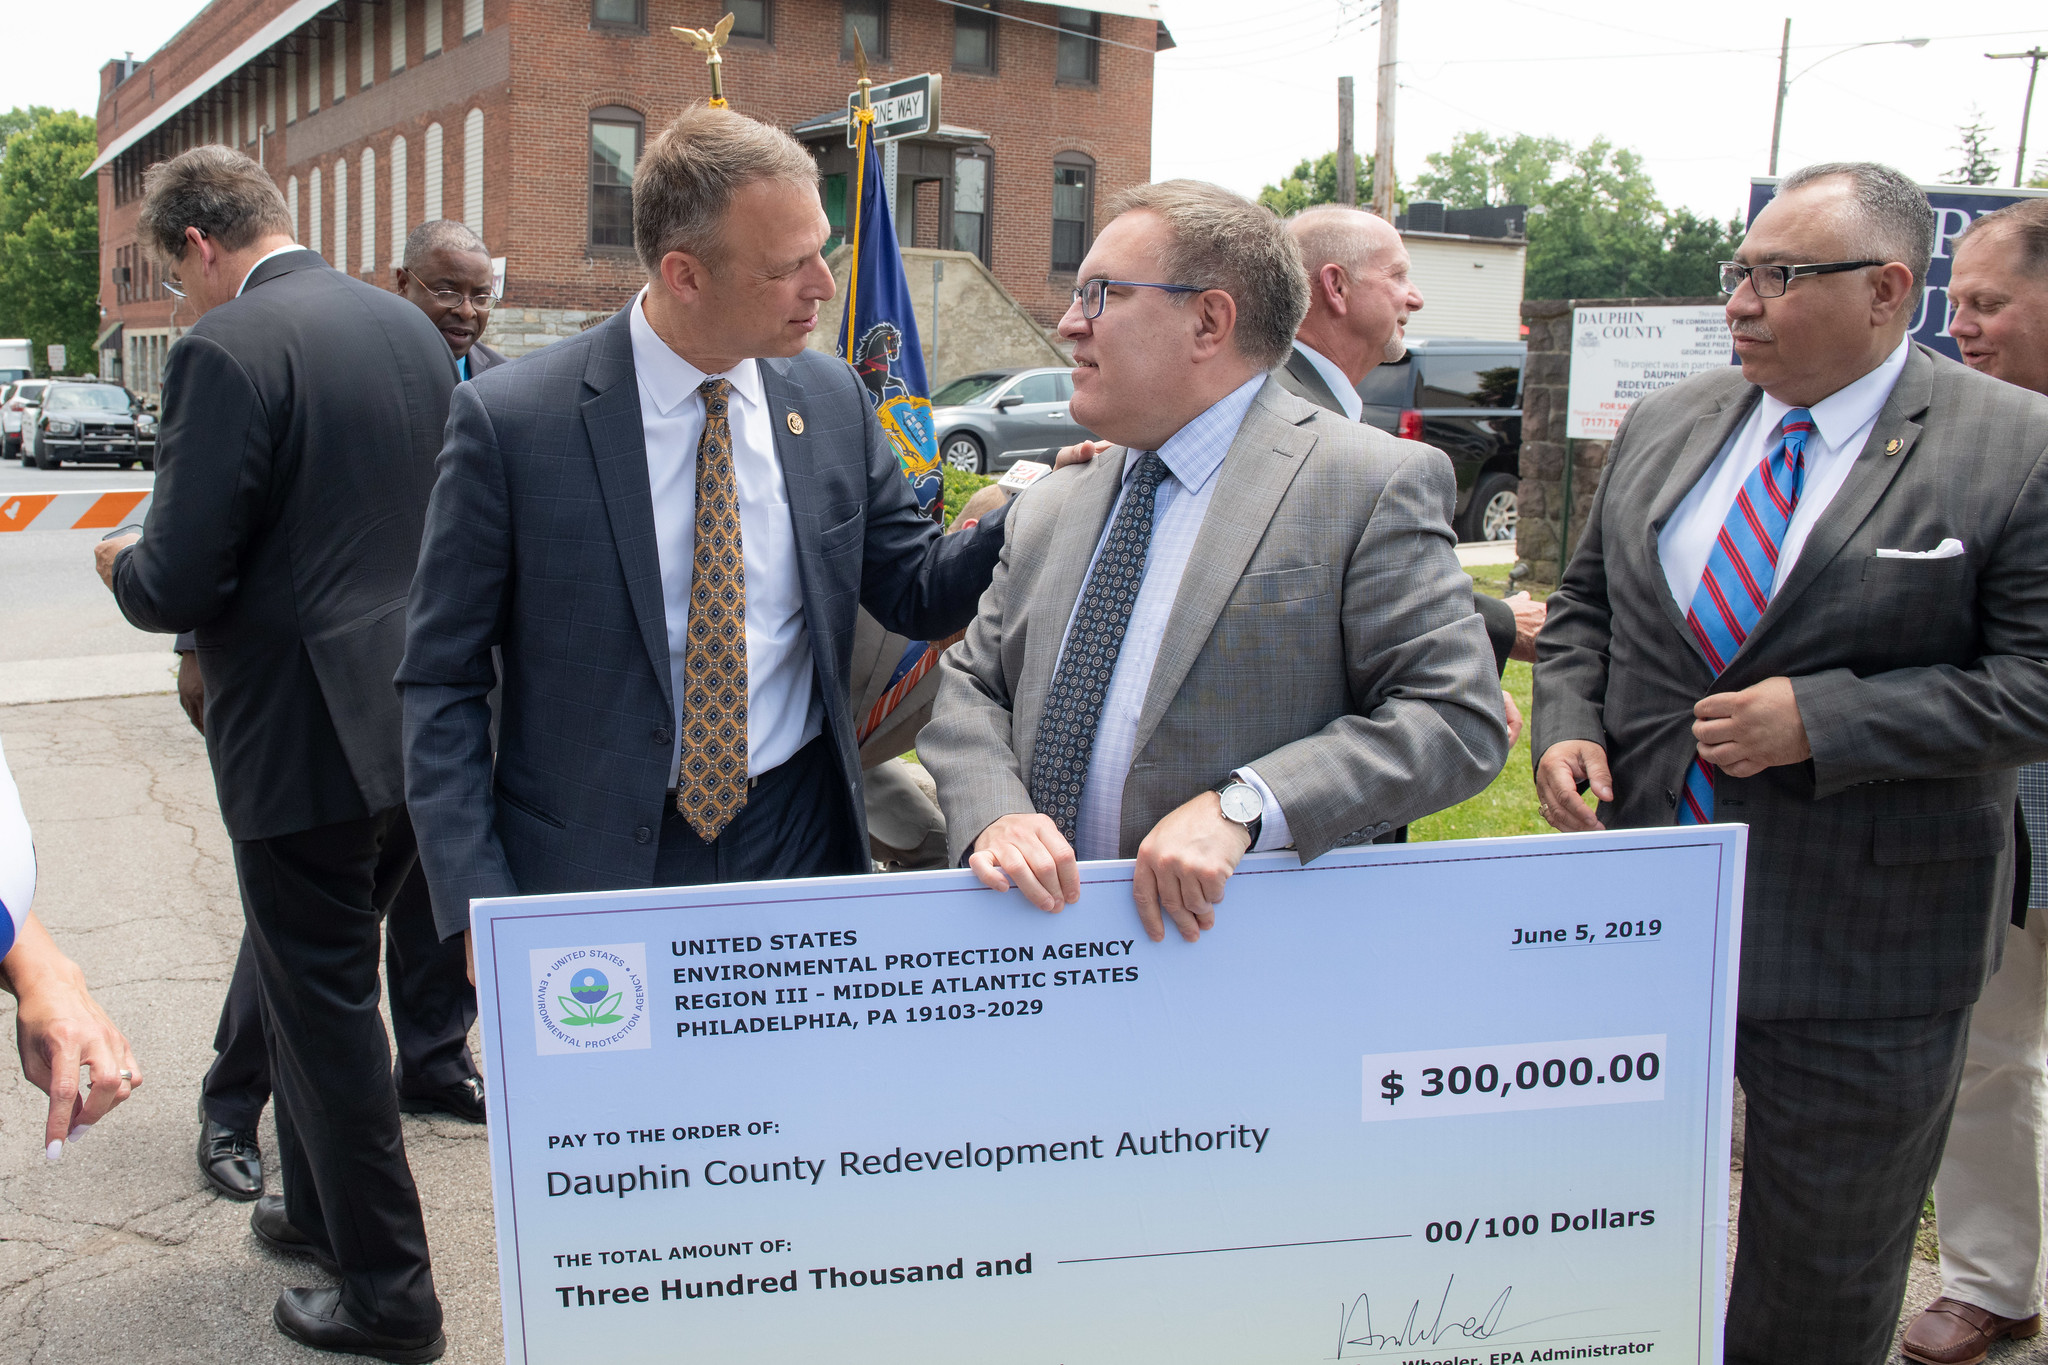 Congressman Scott Perry welcomes EPA Administrator Andrew Wheeler as he announces funding to address contaminated properties in Dauphin County, PA